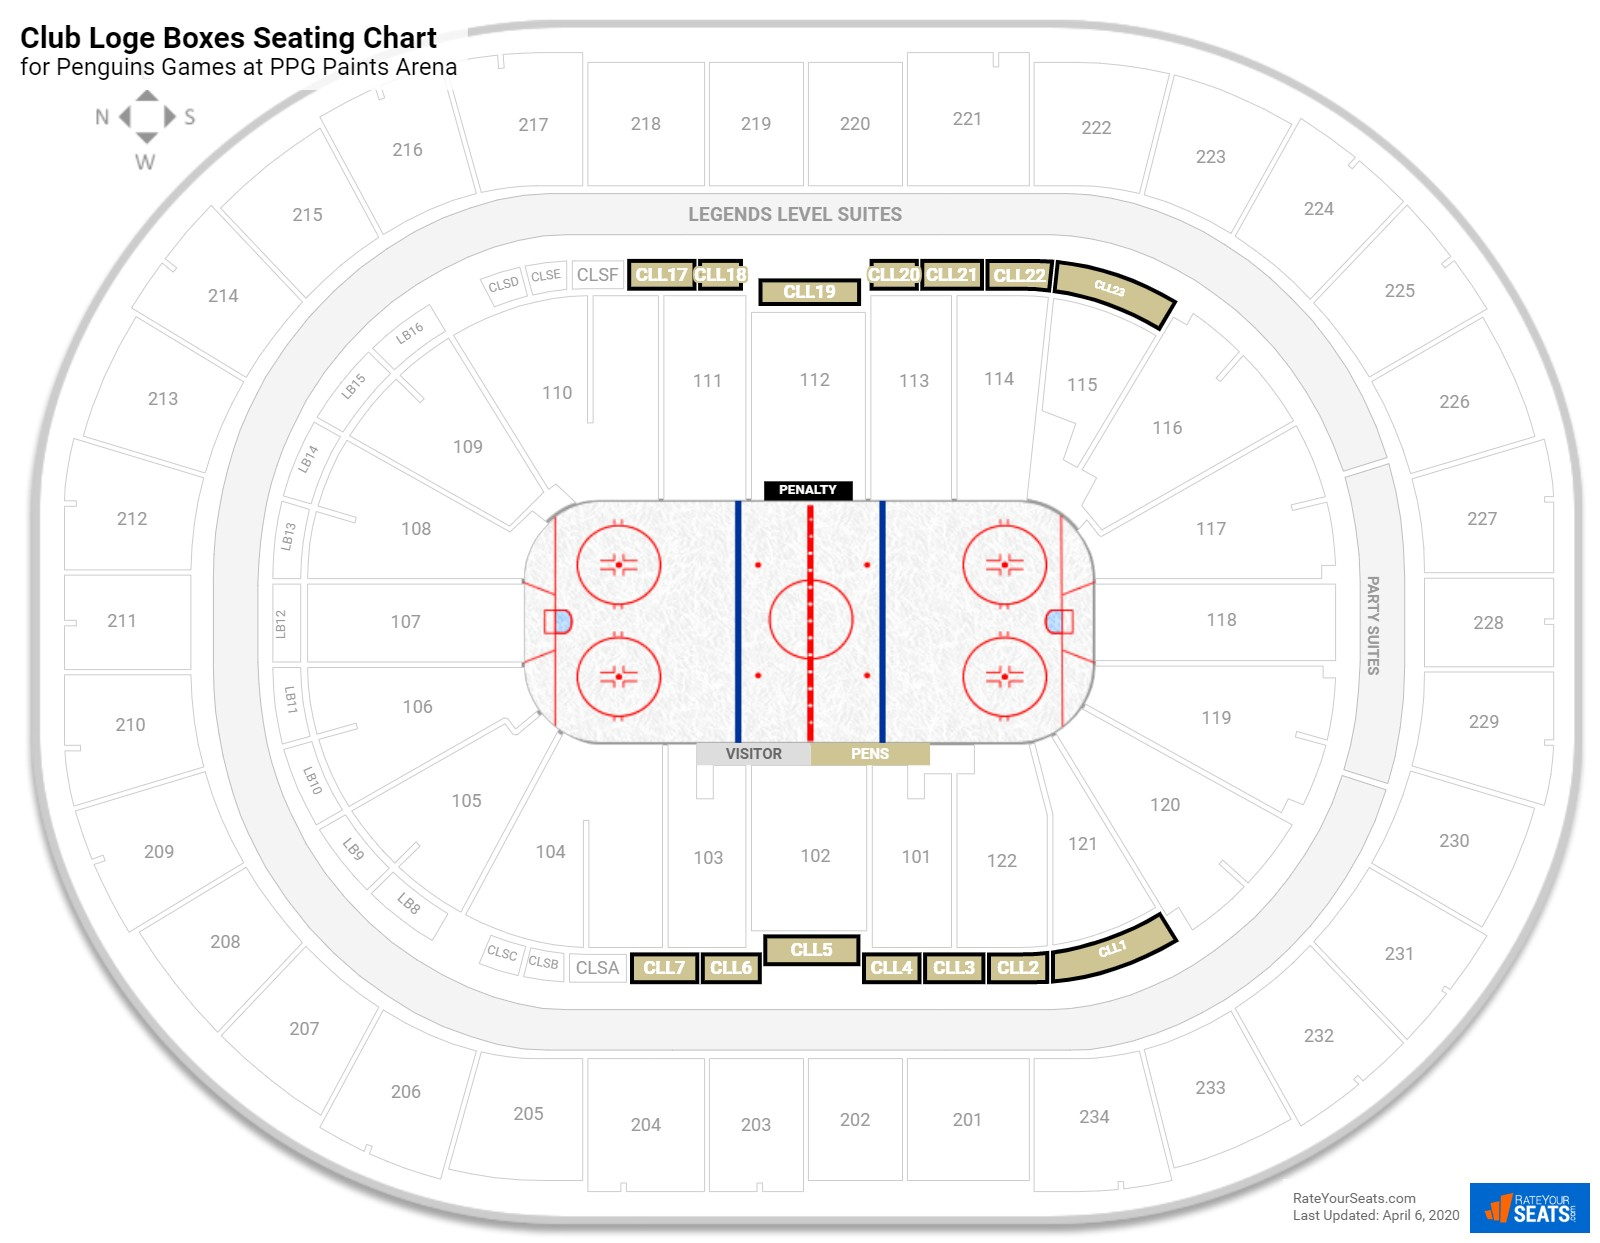 PPG Paints Arena Club Loge Boxes seating chart